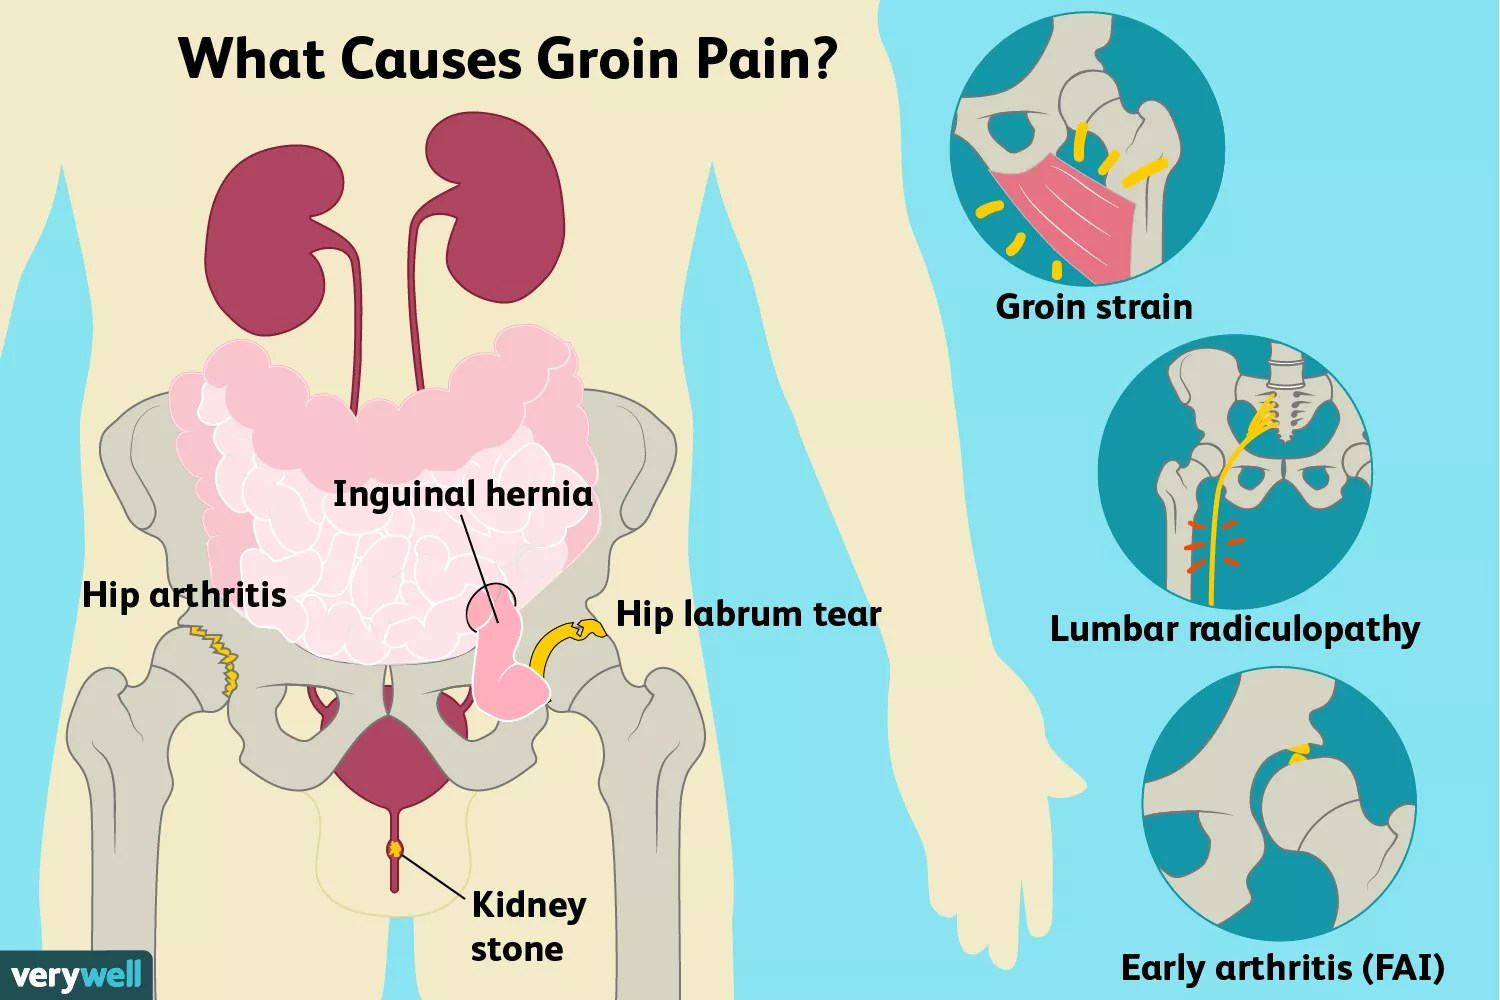 groin pain causes